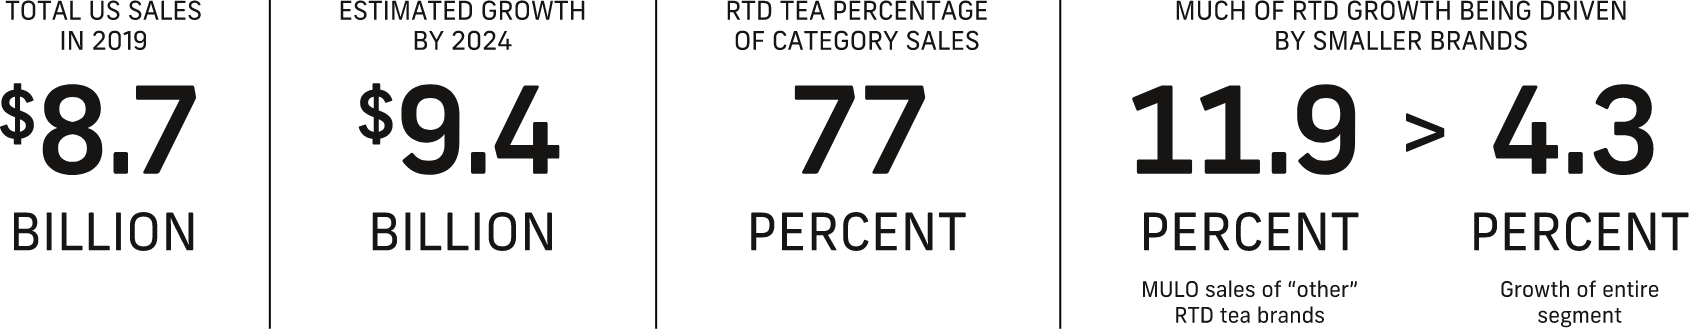 tea sales stats and estimated growth